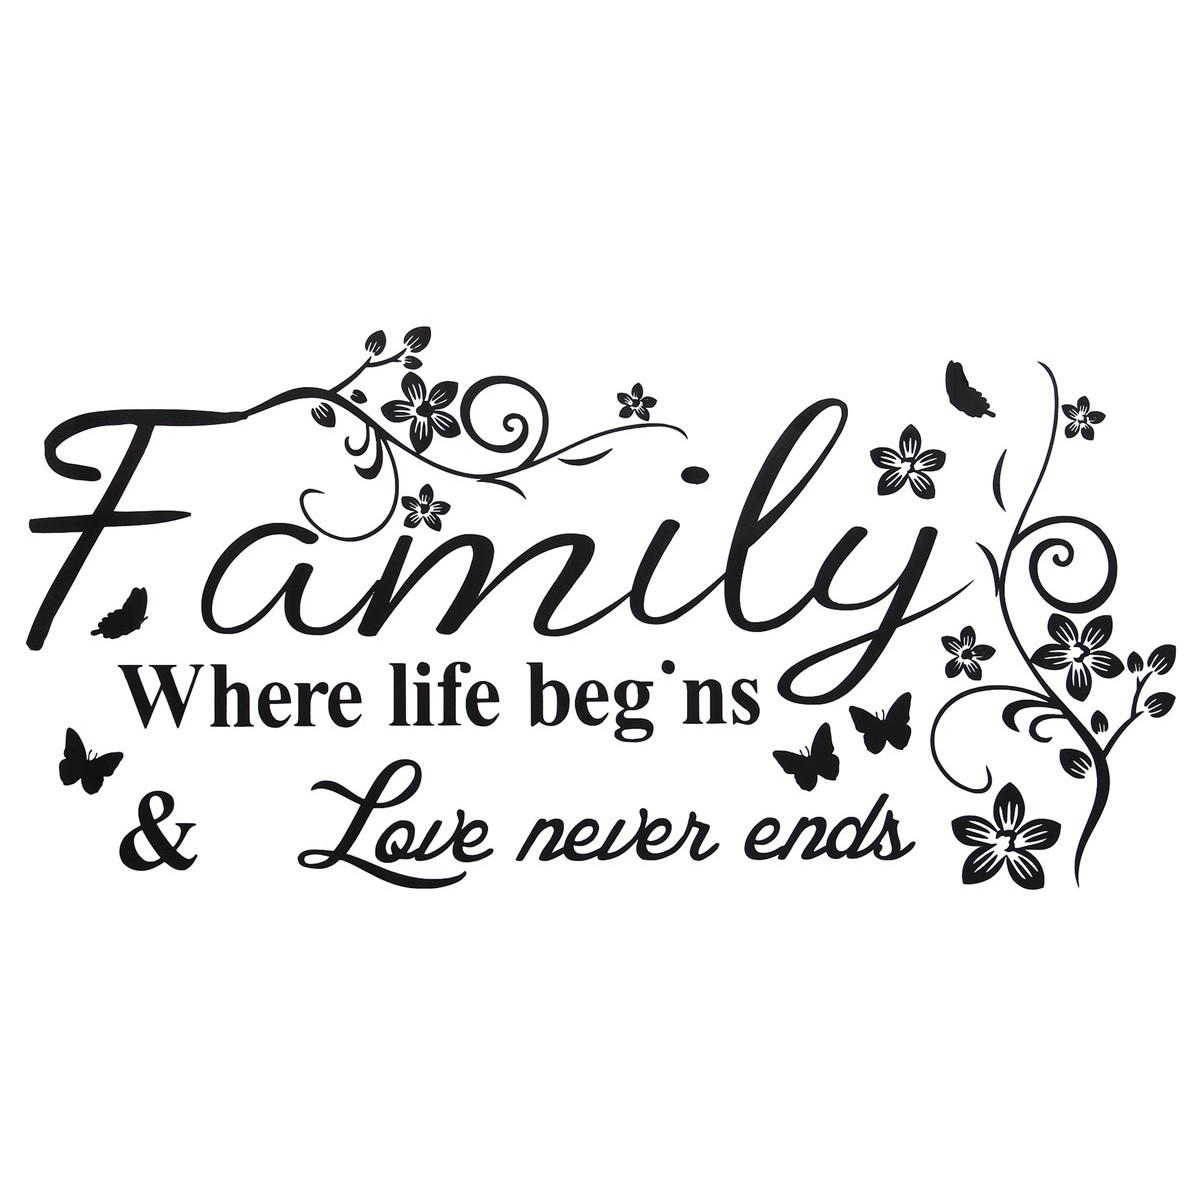 Family Love Quotes Images Beautiful Design Family Love Life Quote Wall Sticker Where Life